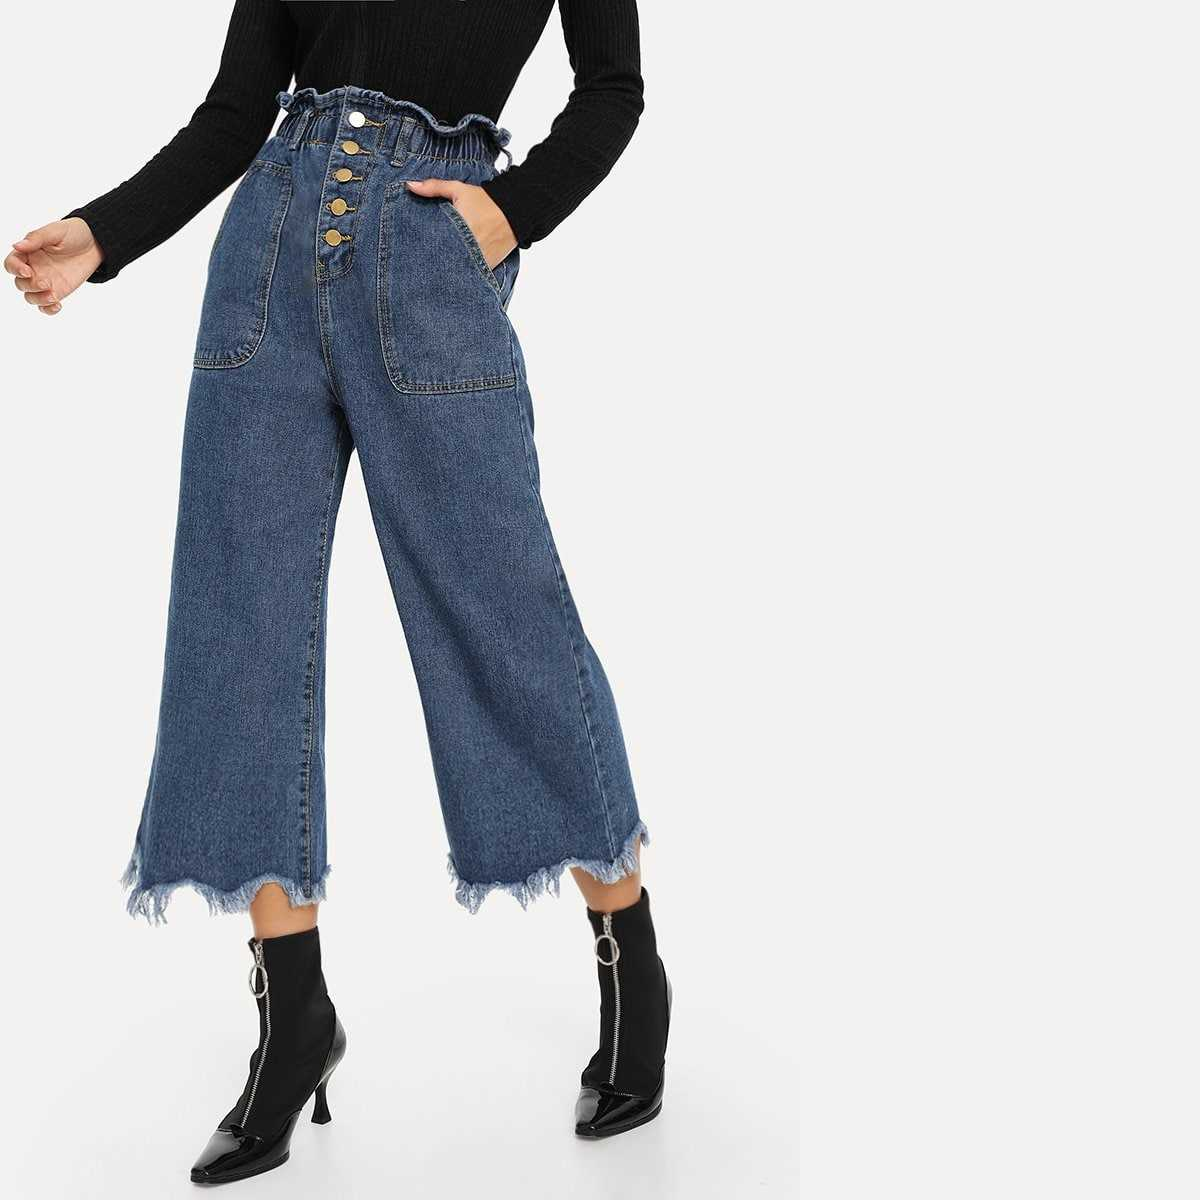 Button Front Frayed Hem Wide Leg Jeans in Blue by ROMWE on GOOFASH